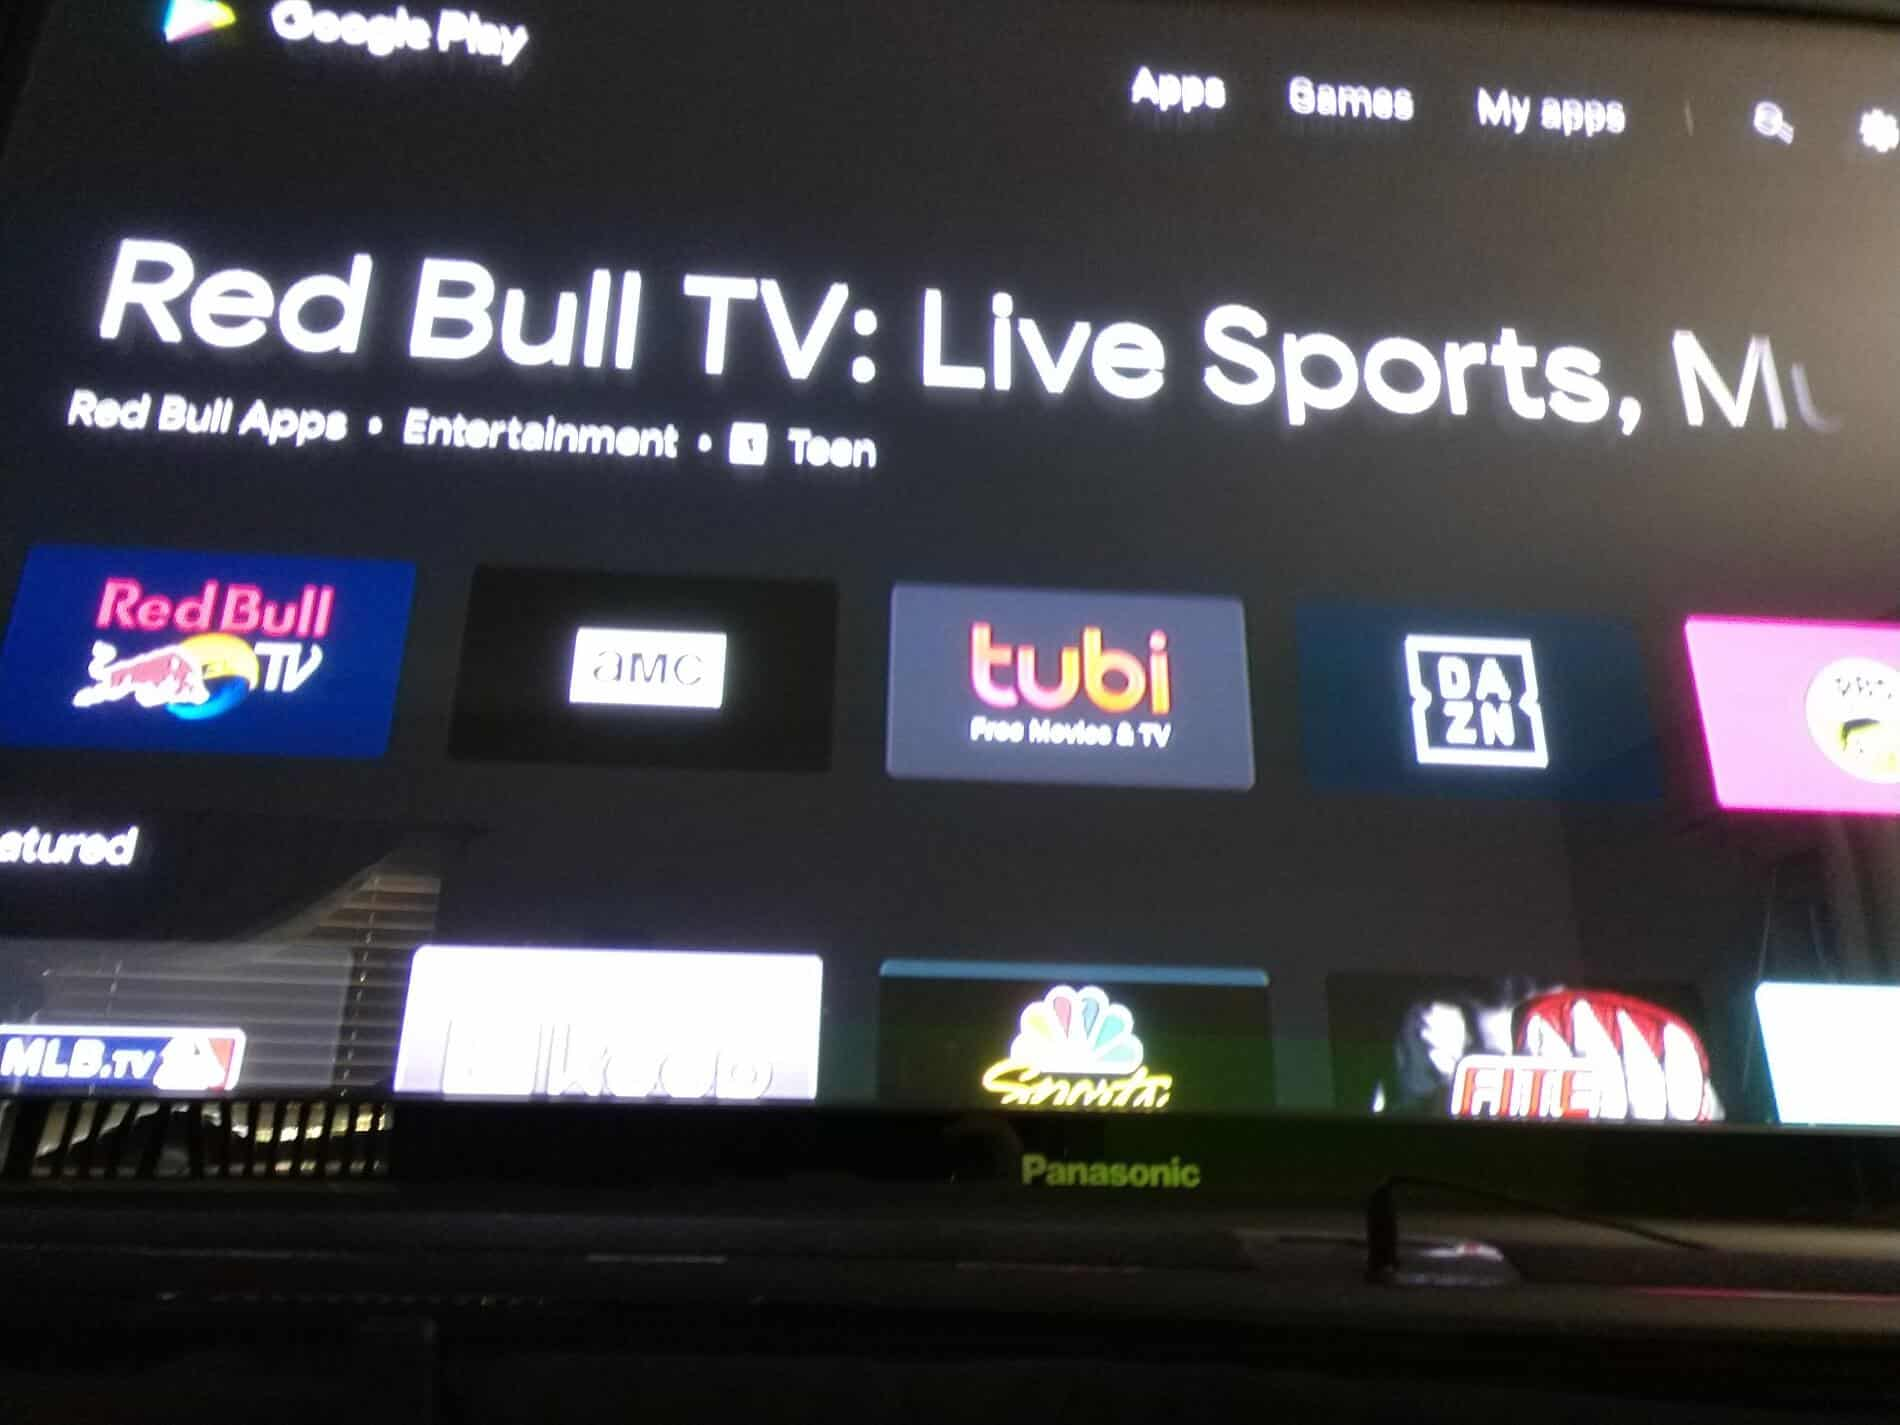 New Android TV Play Store live images 02 1